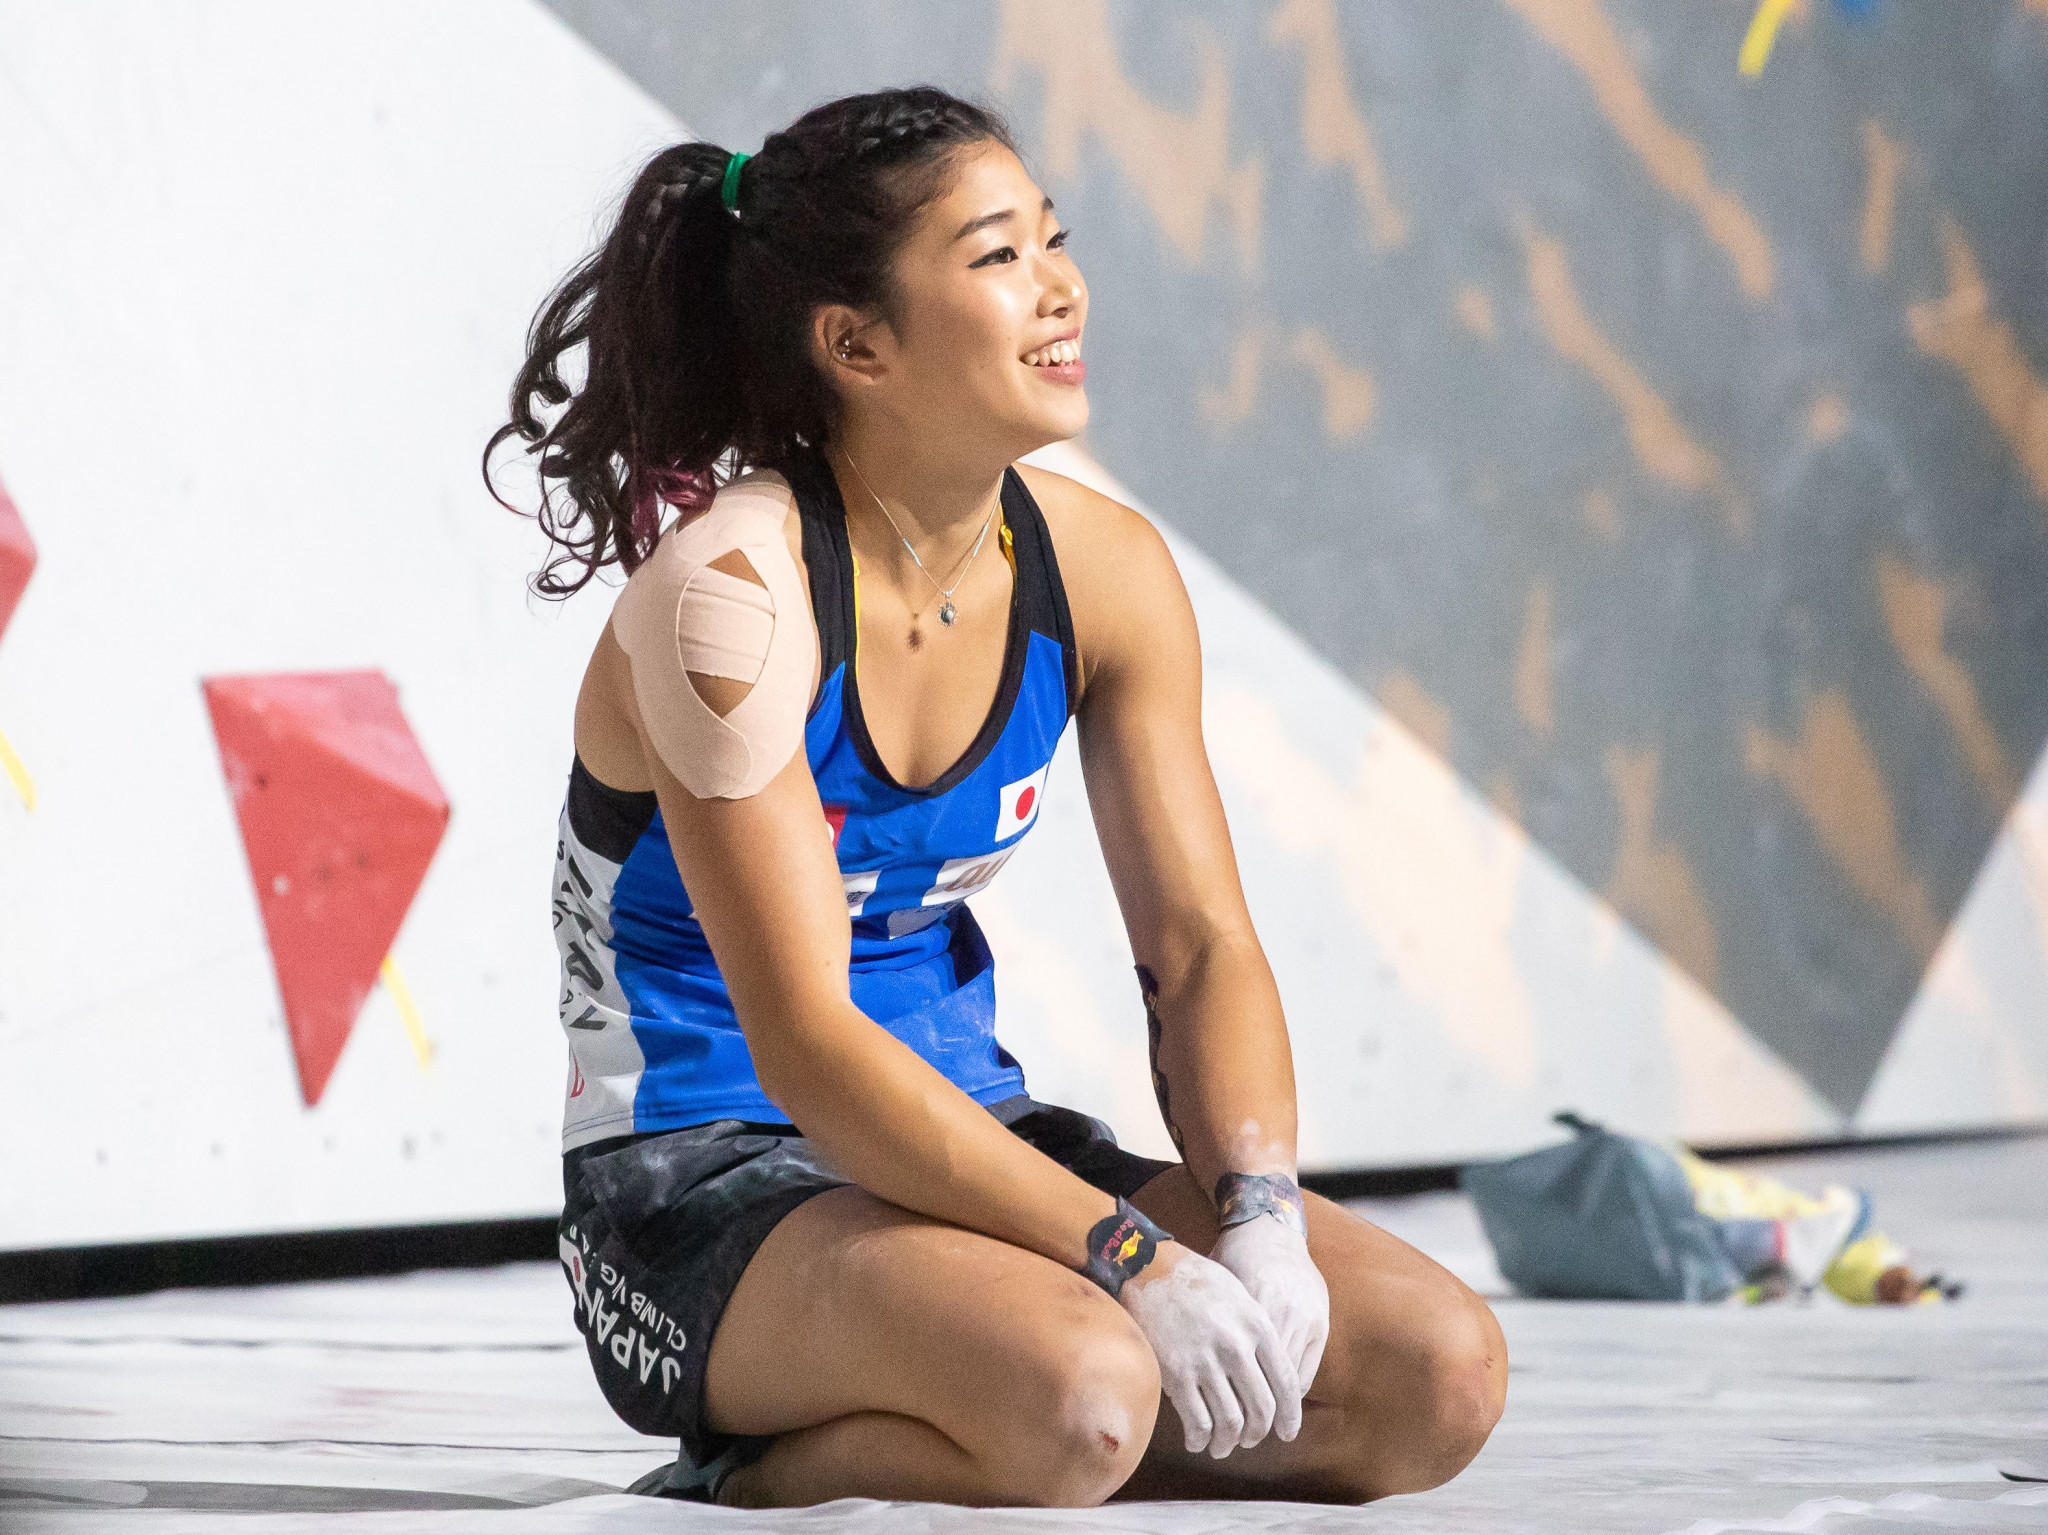 Super-consistent IFSC world bouldering champion Nonaka wins adidas Rockstars gold in Stuttgart